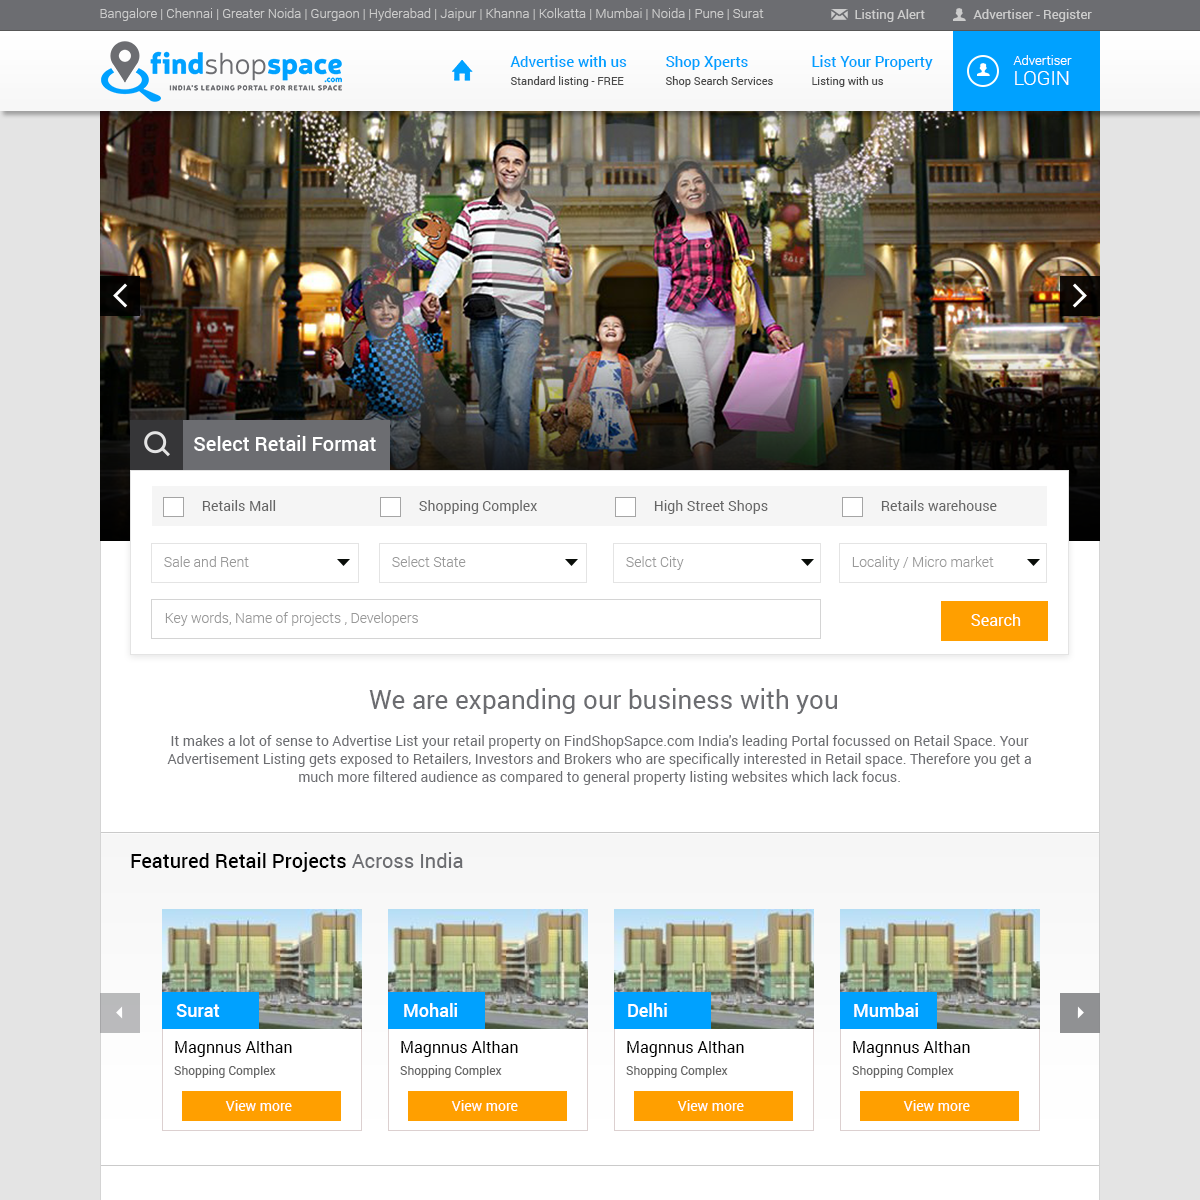 Feminine Colorful Advertising Web Design For A Company By Maxartkiller Design 5201572